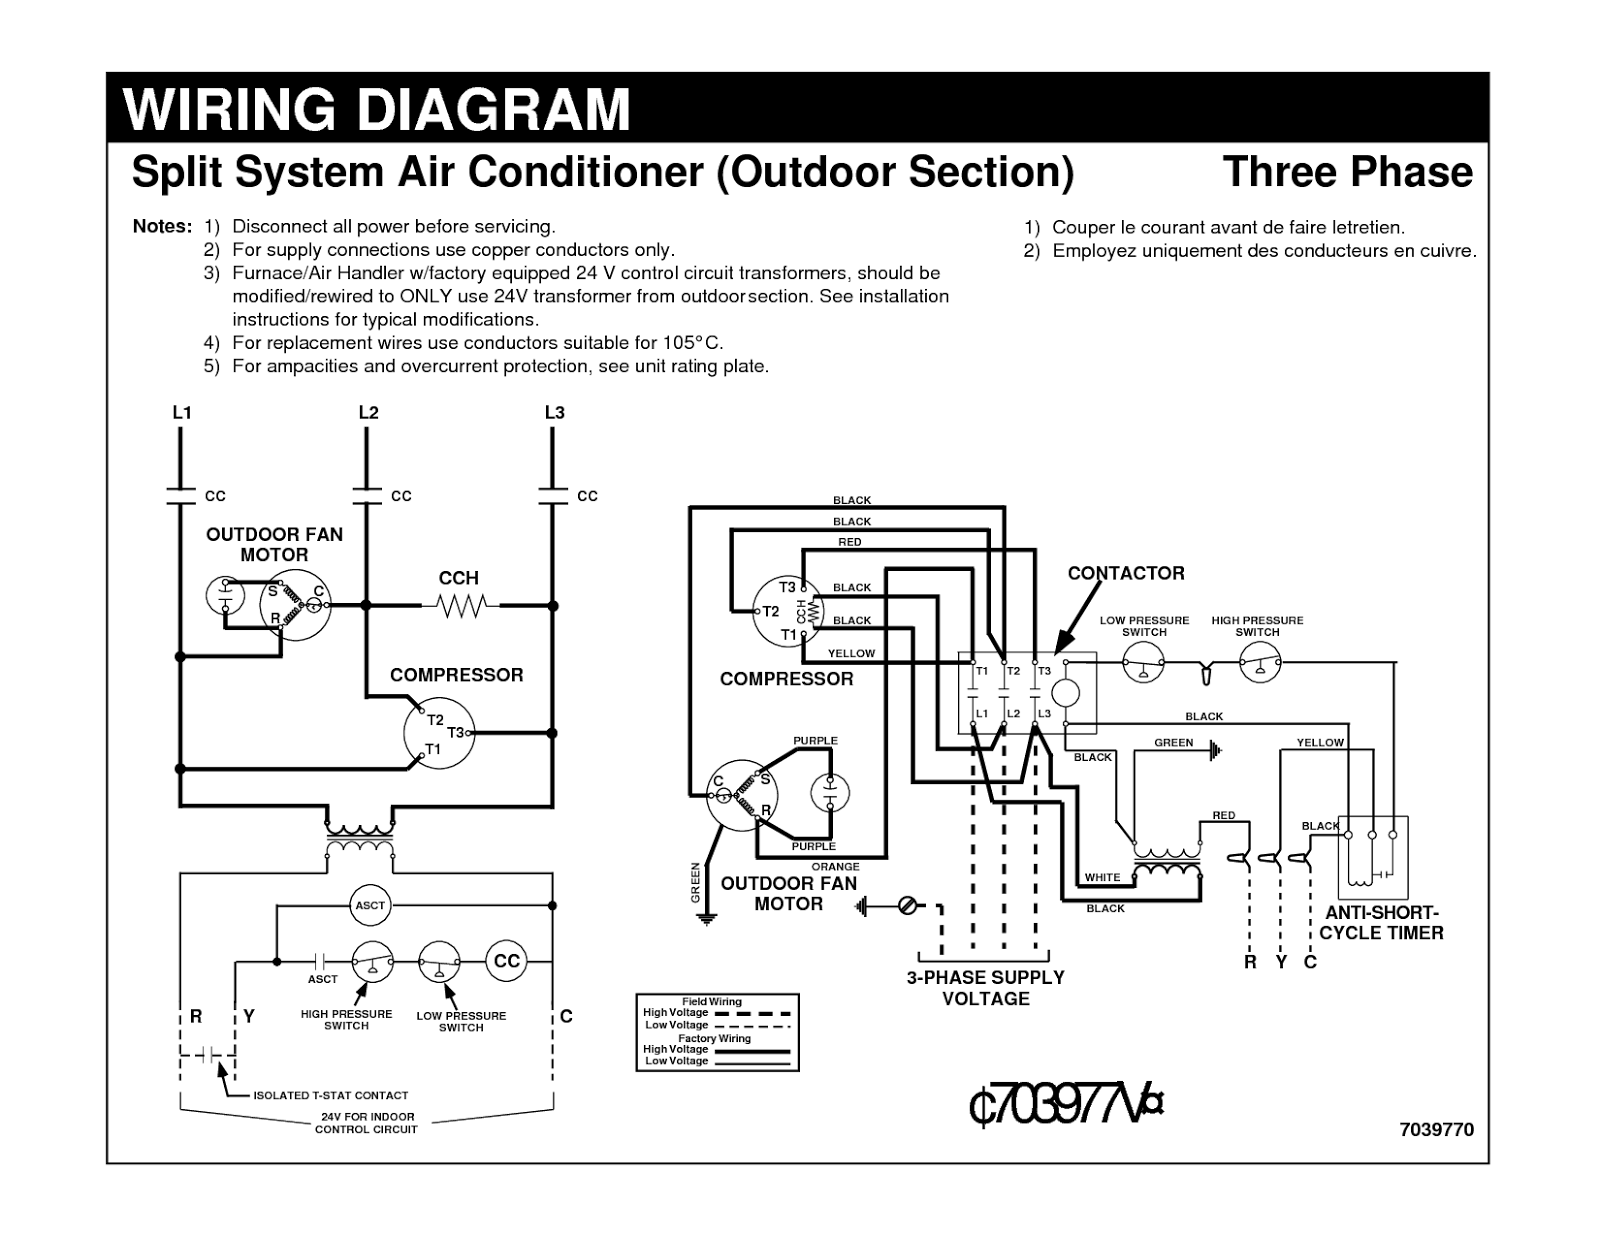 central ac control wiring diagram wiring diagram database ac wiring diagram simple air conditioner wiring diagram [ 1600 x 1236 Pixel ]